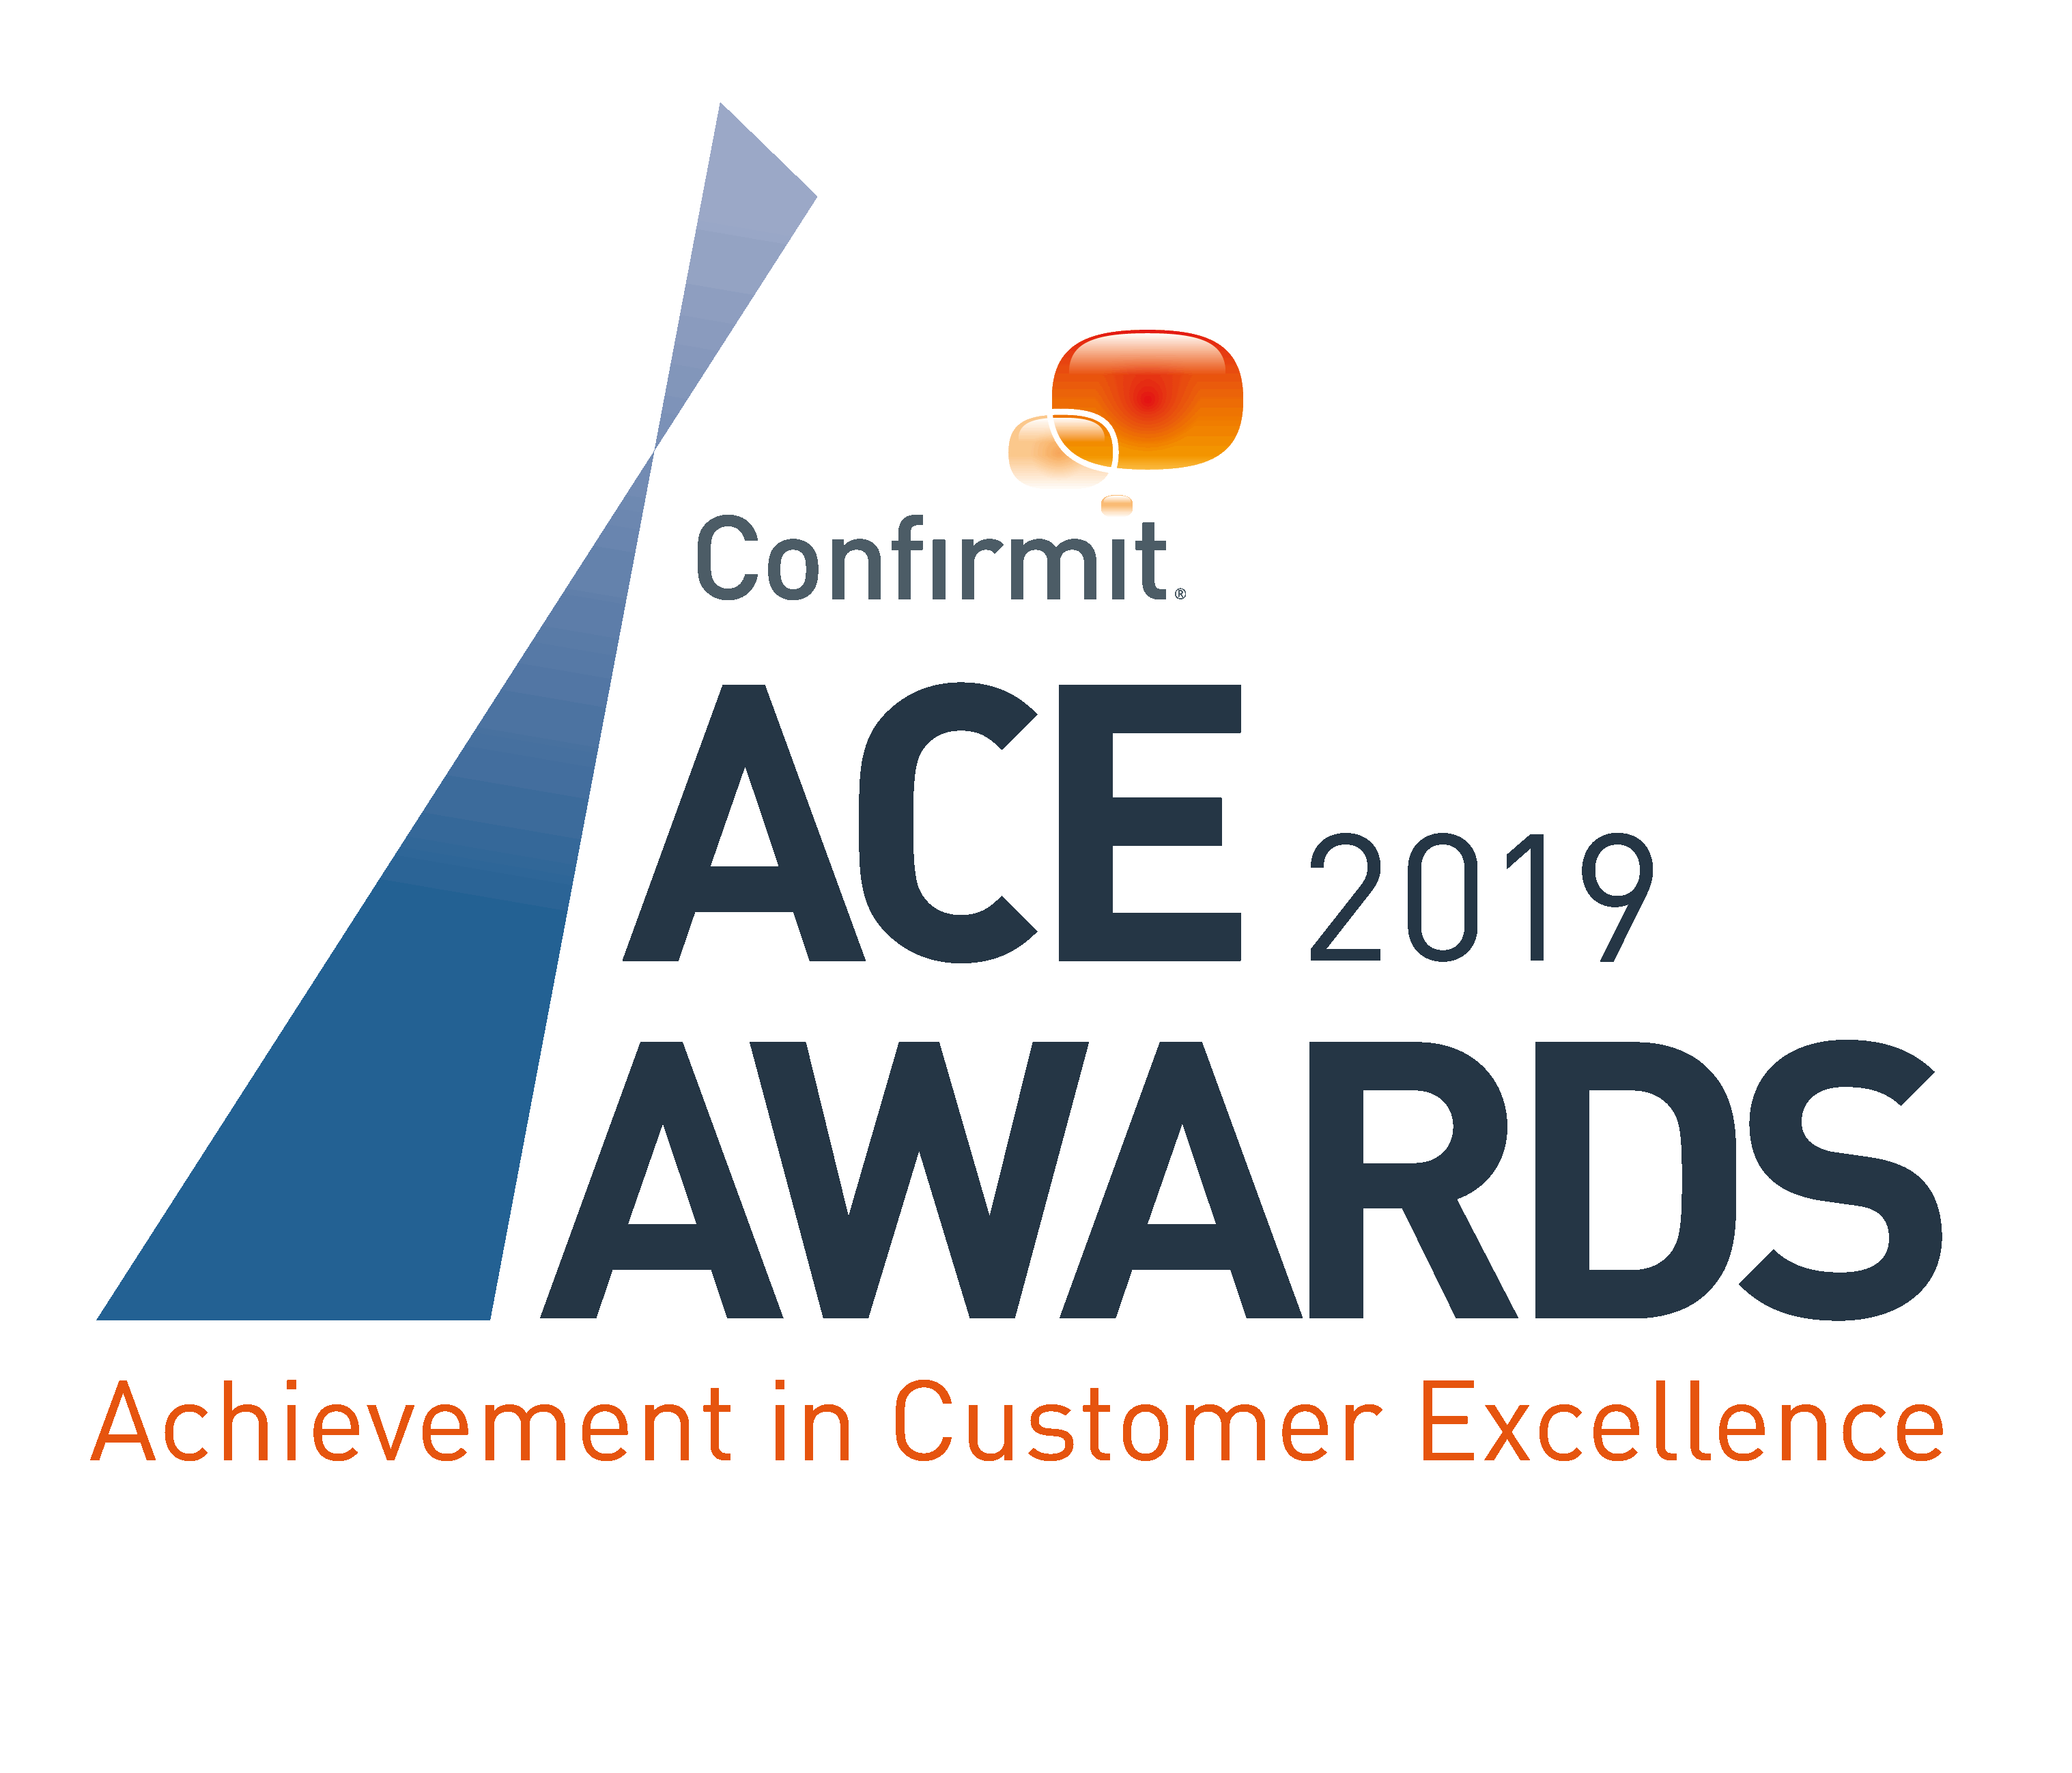 The time has come! The 2019 Confirmit ACE Awards are open and the judges are looking forward to cracking on with reviewing some submissions. I think they're going to be busy. We've had quite a flurry